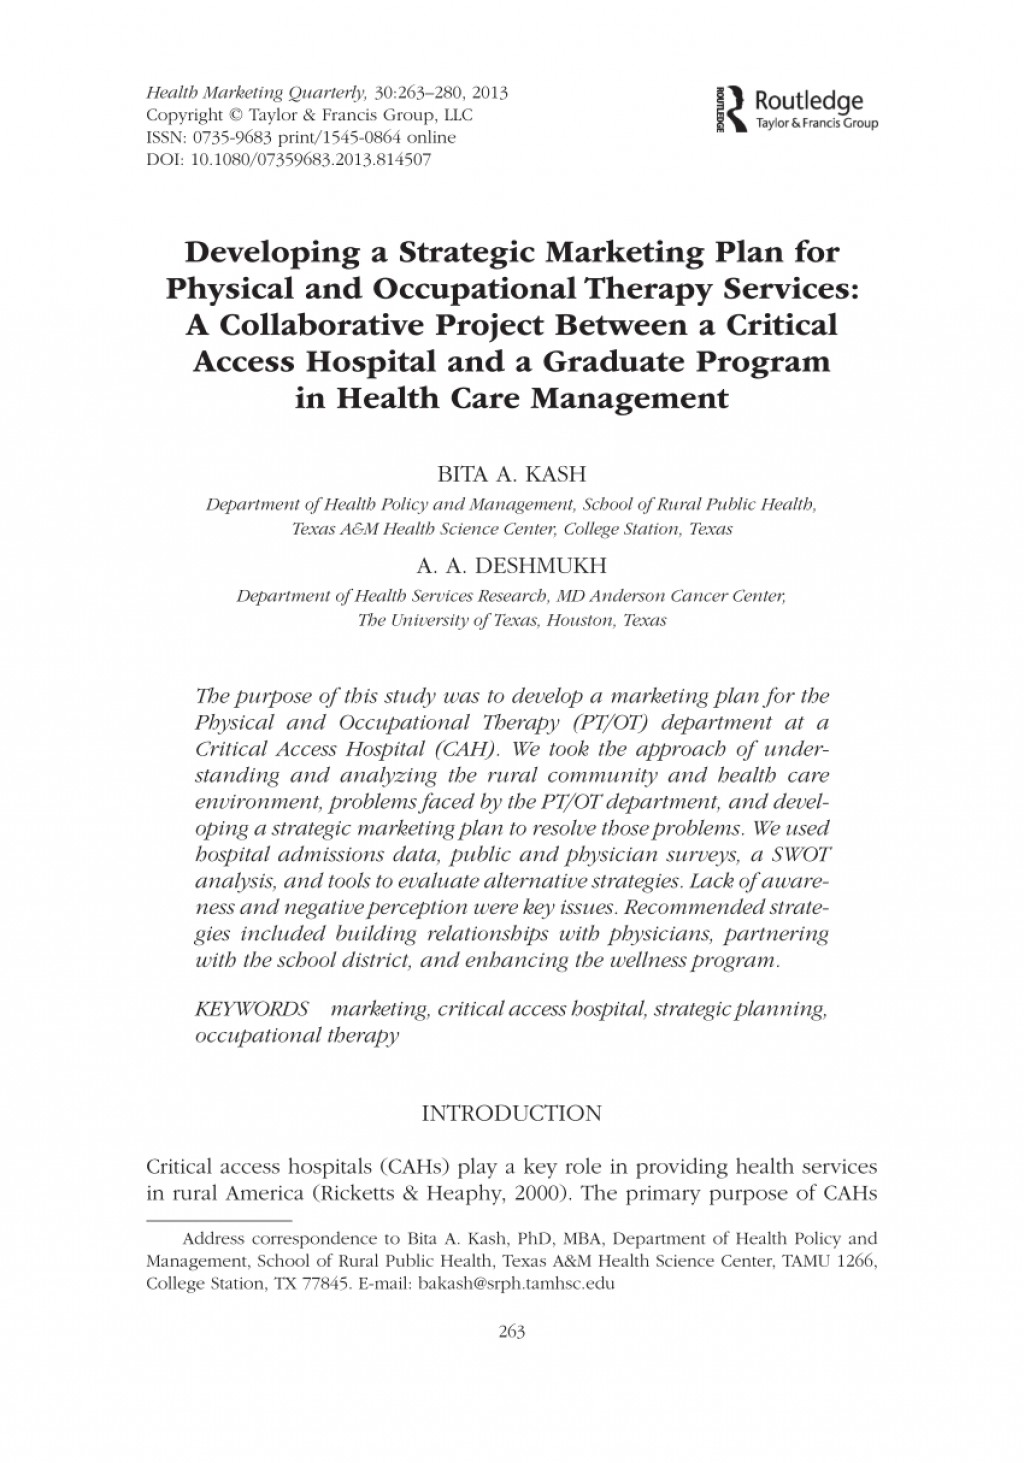 006 Research Paper On Cancer Marketing Plan Mba Image Hd Largepreview For Admission Singular Treatment Pdf Large